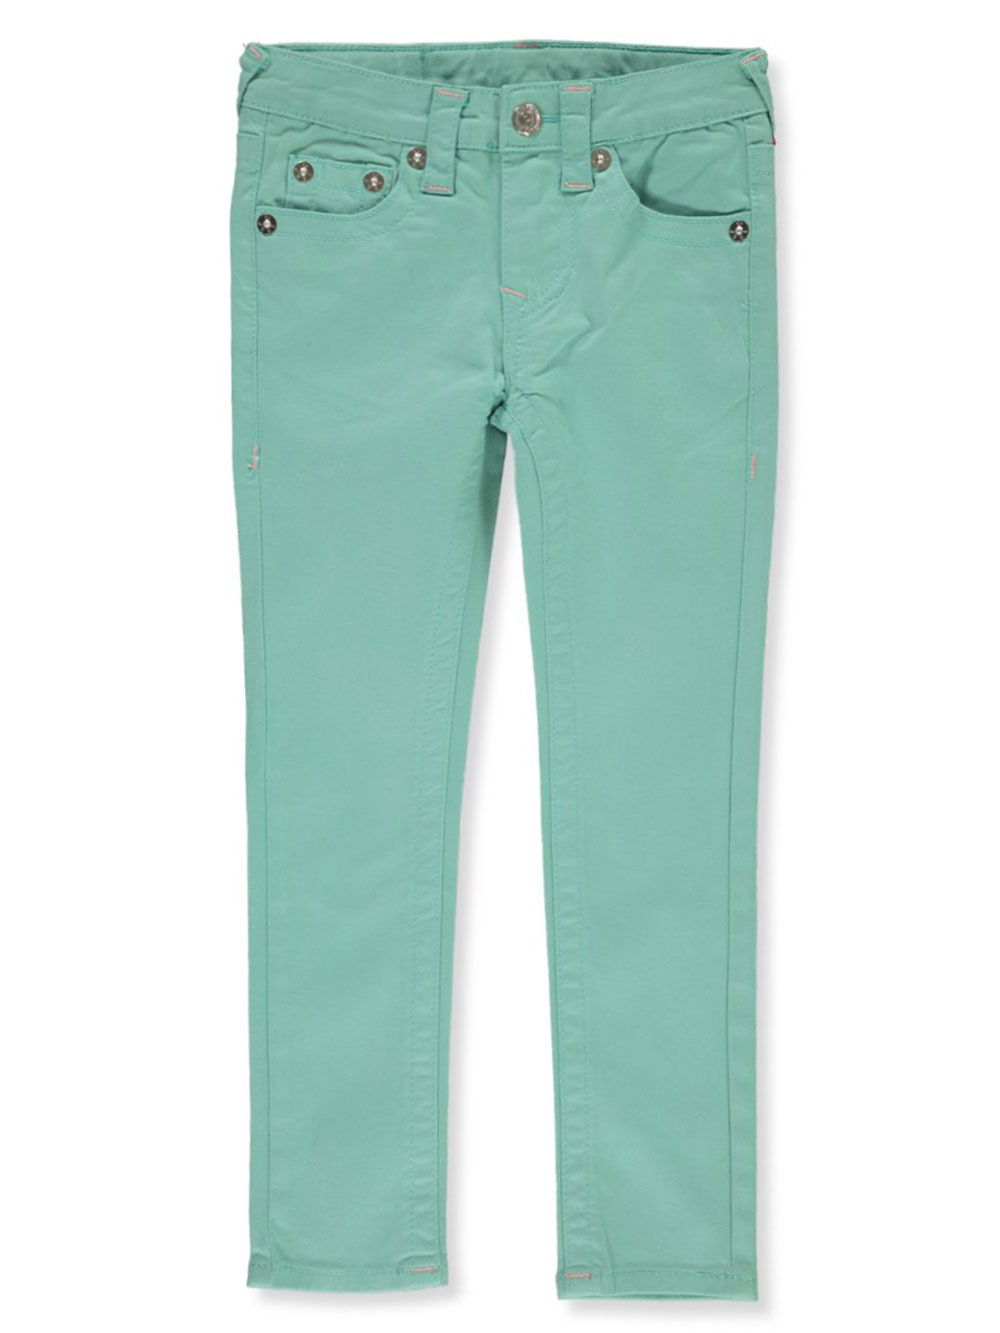 Girls Green Jeans